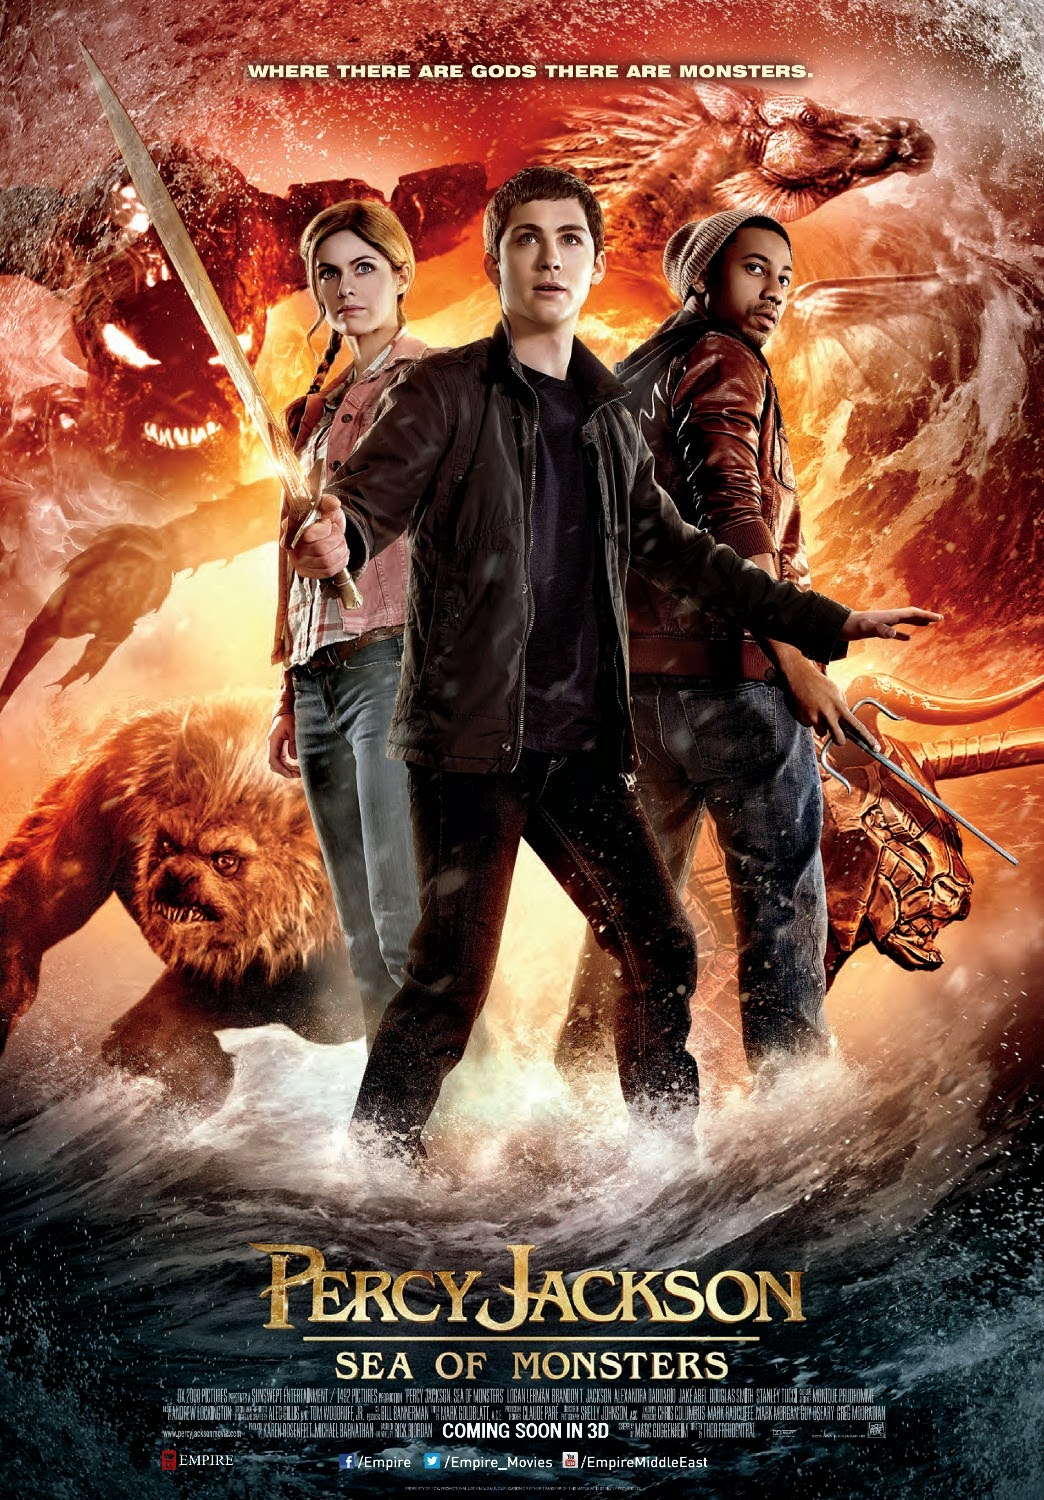 Percy Jackson La Maldicion Del Titan Libro Books Movies And Tv Shows Saga Percy Jackson Y Los